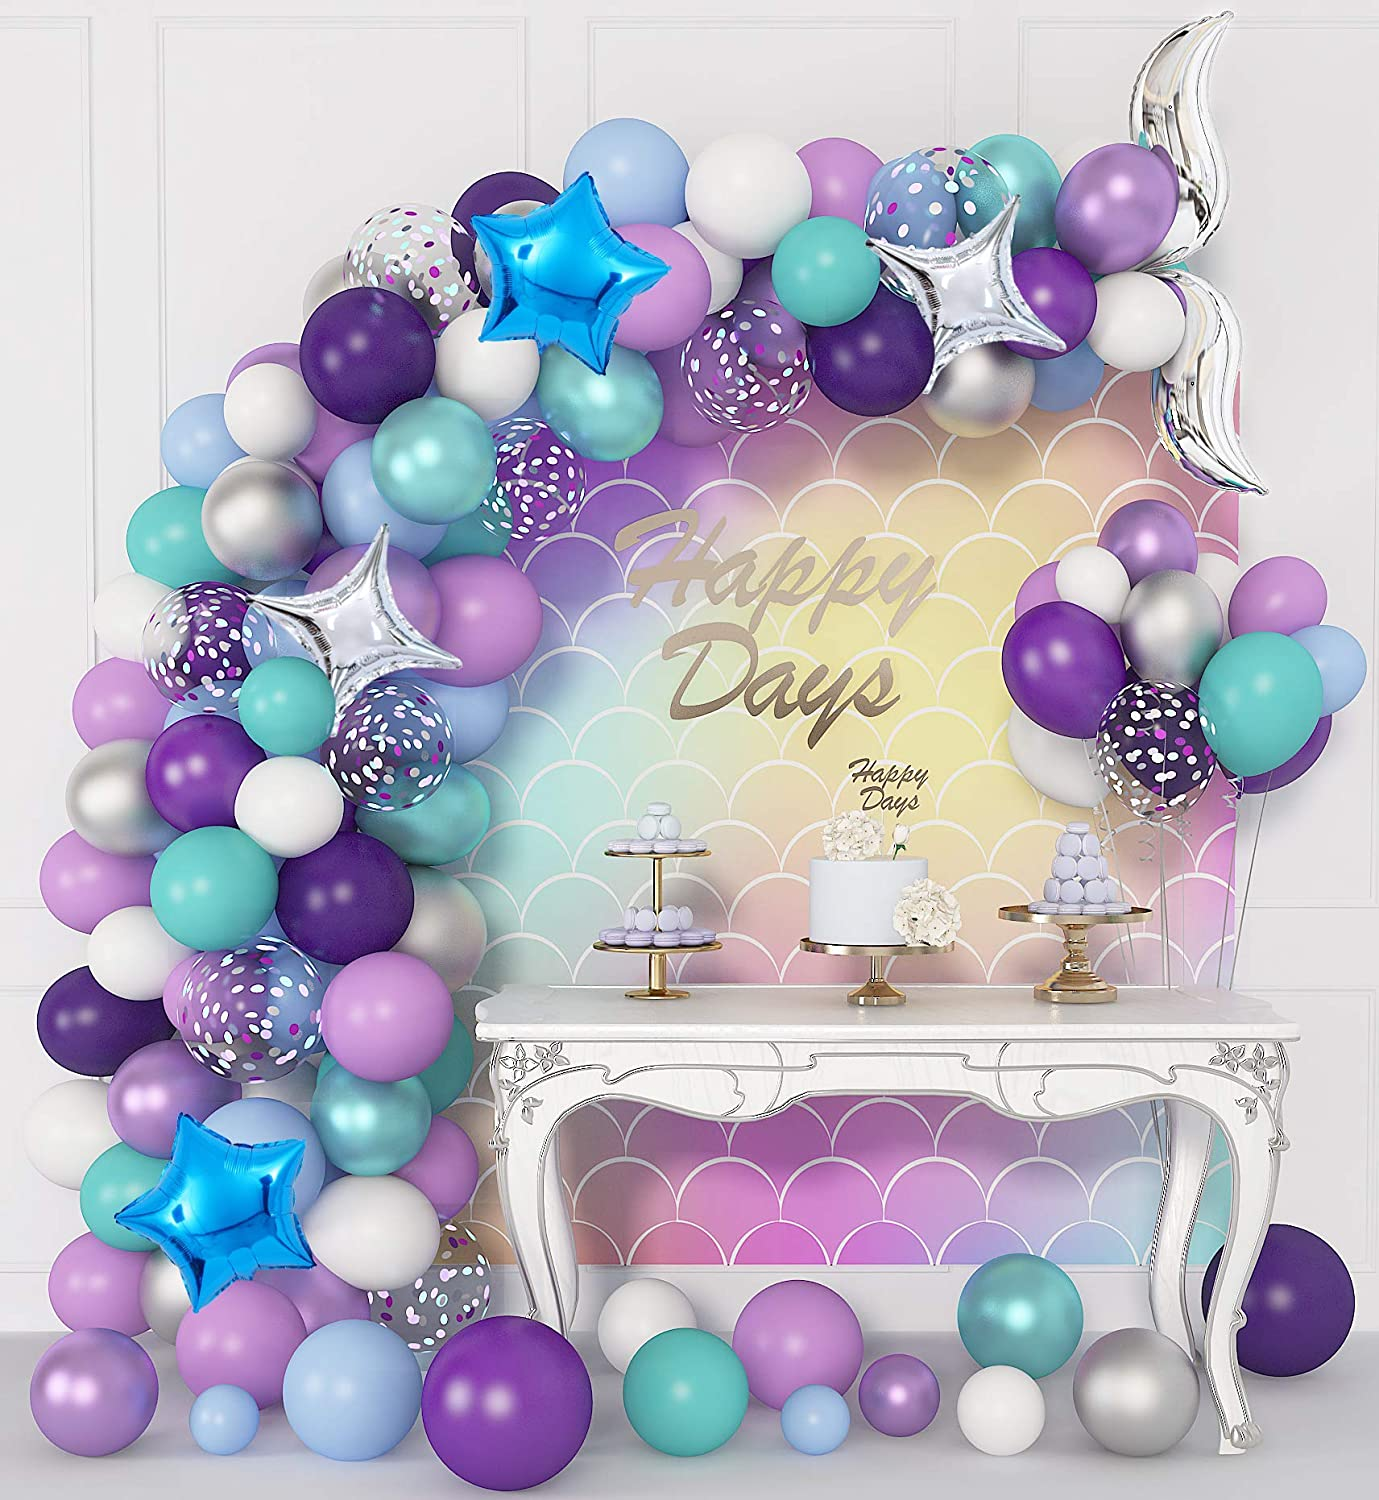 324 Pcs Mermaid Balloons Arch Garland Kit